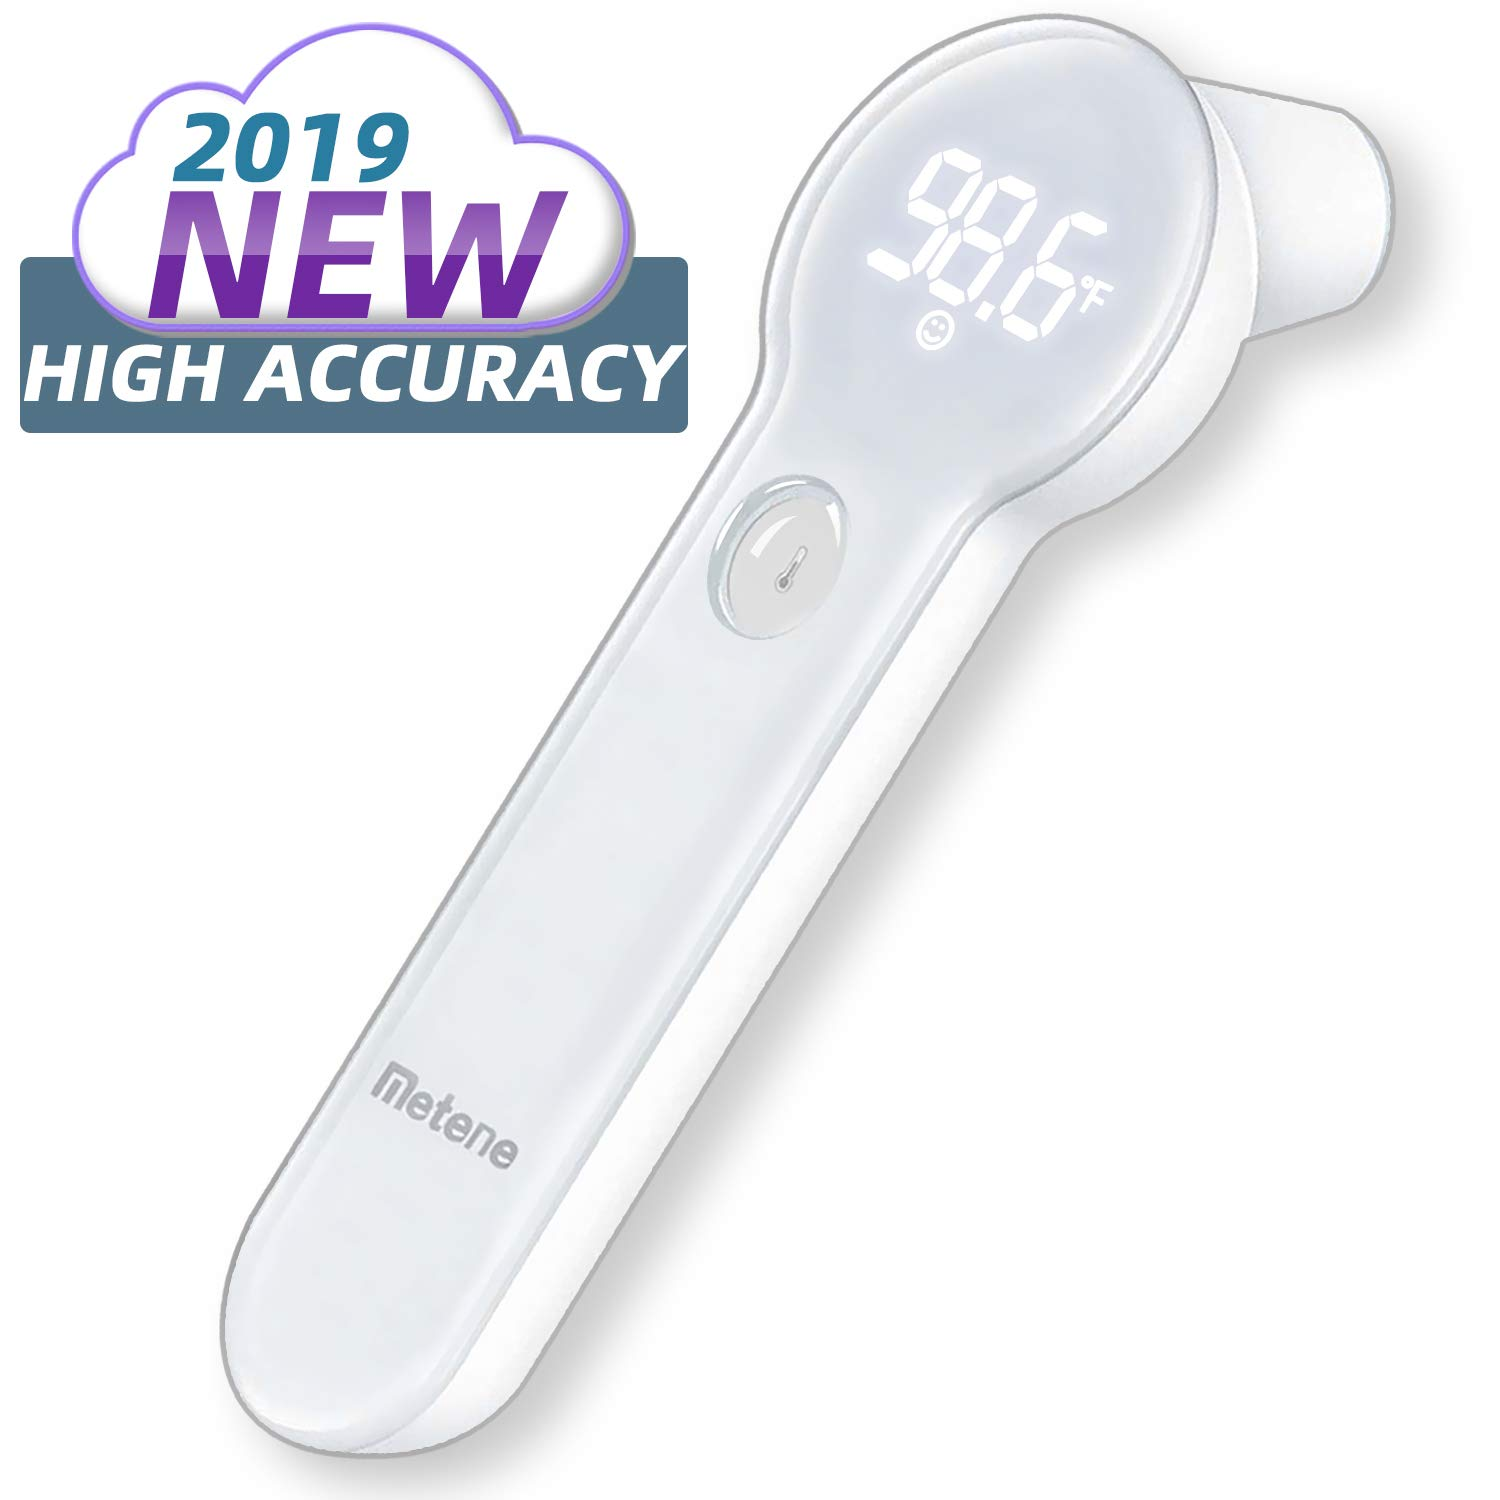 Baby Thermometer for Fever - Instant Accurate Reading Medical Digital Forehead and Ear Thermometer - Metene Infrared Infant Thermometer for Best Accuracy with Indicator for Kids, Toddlers, and Adults by Metene